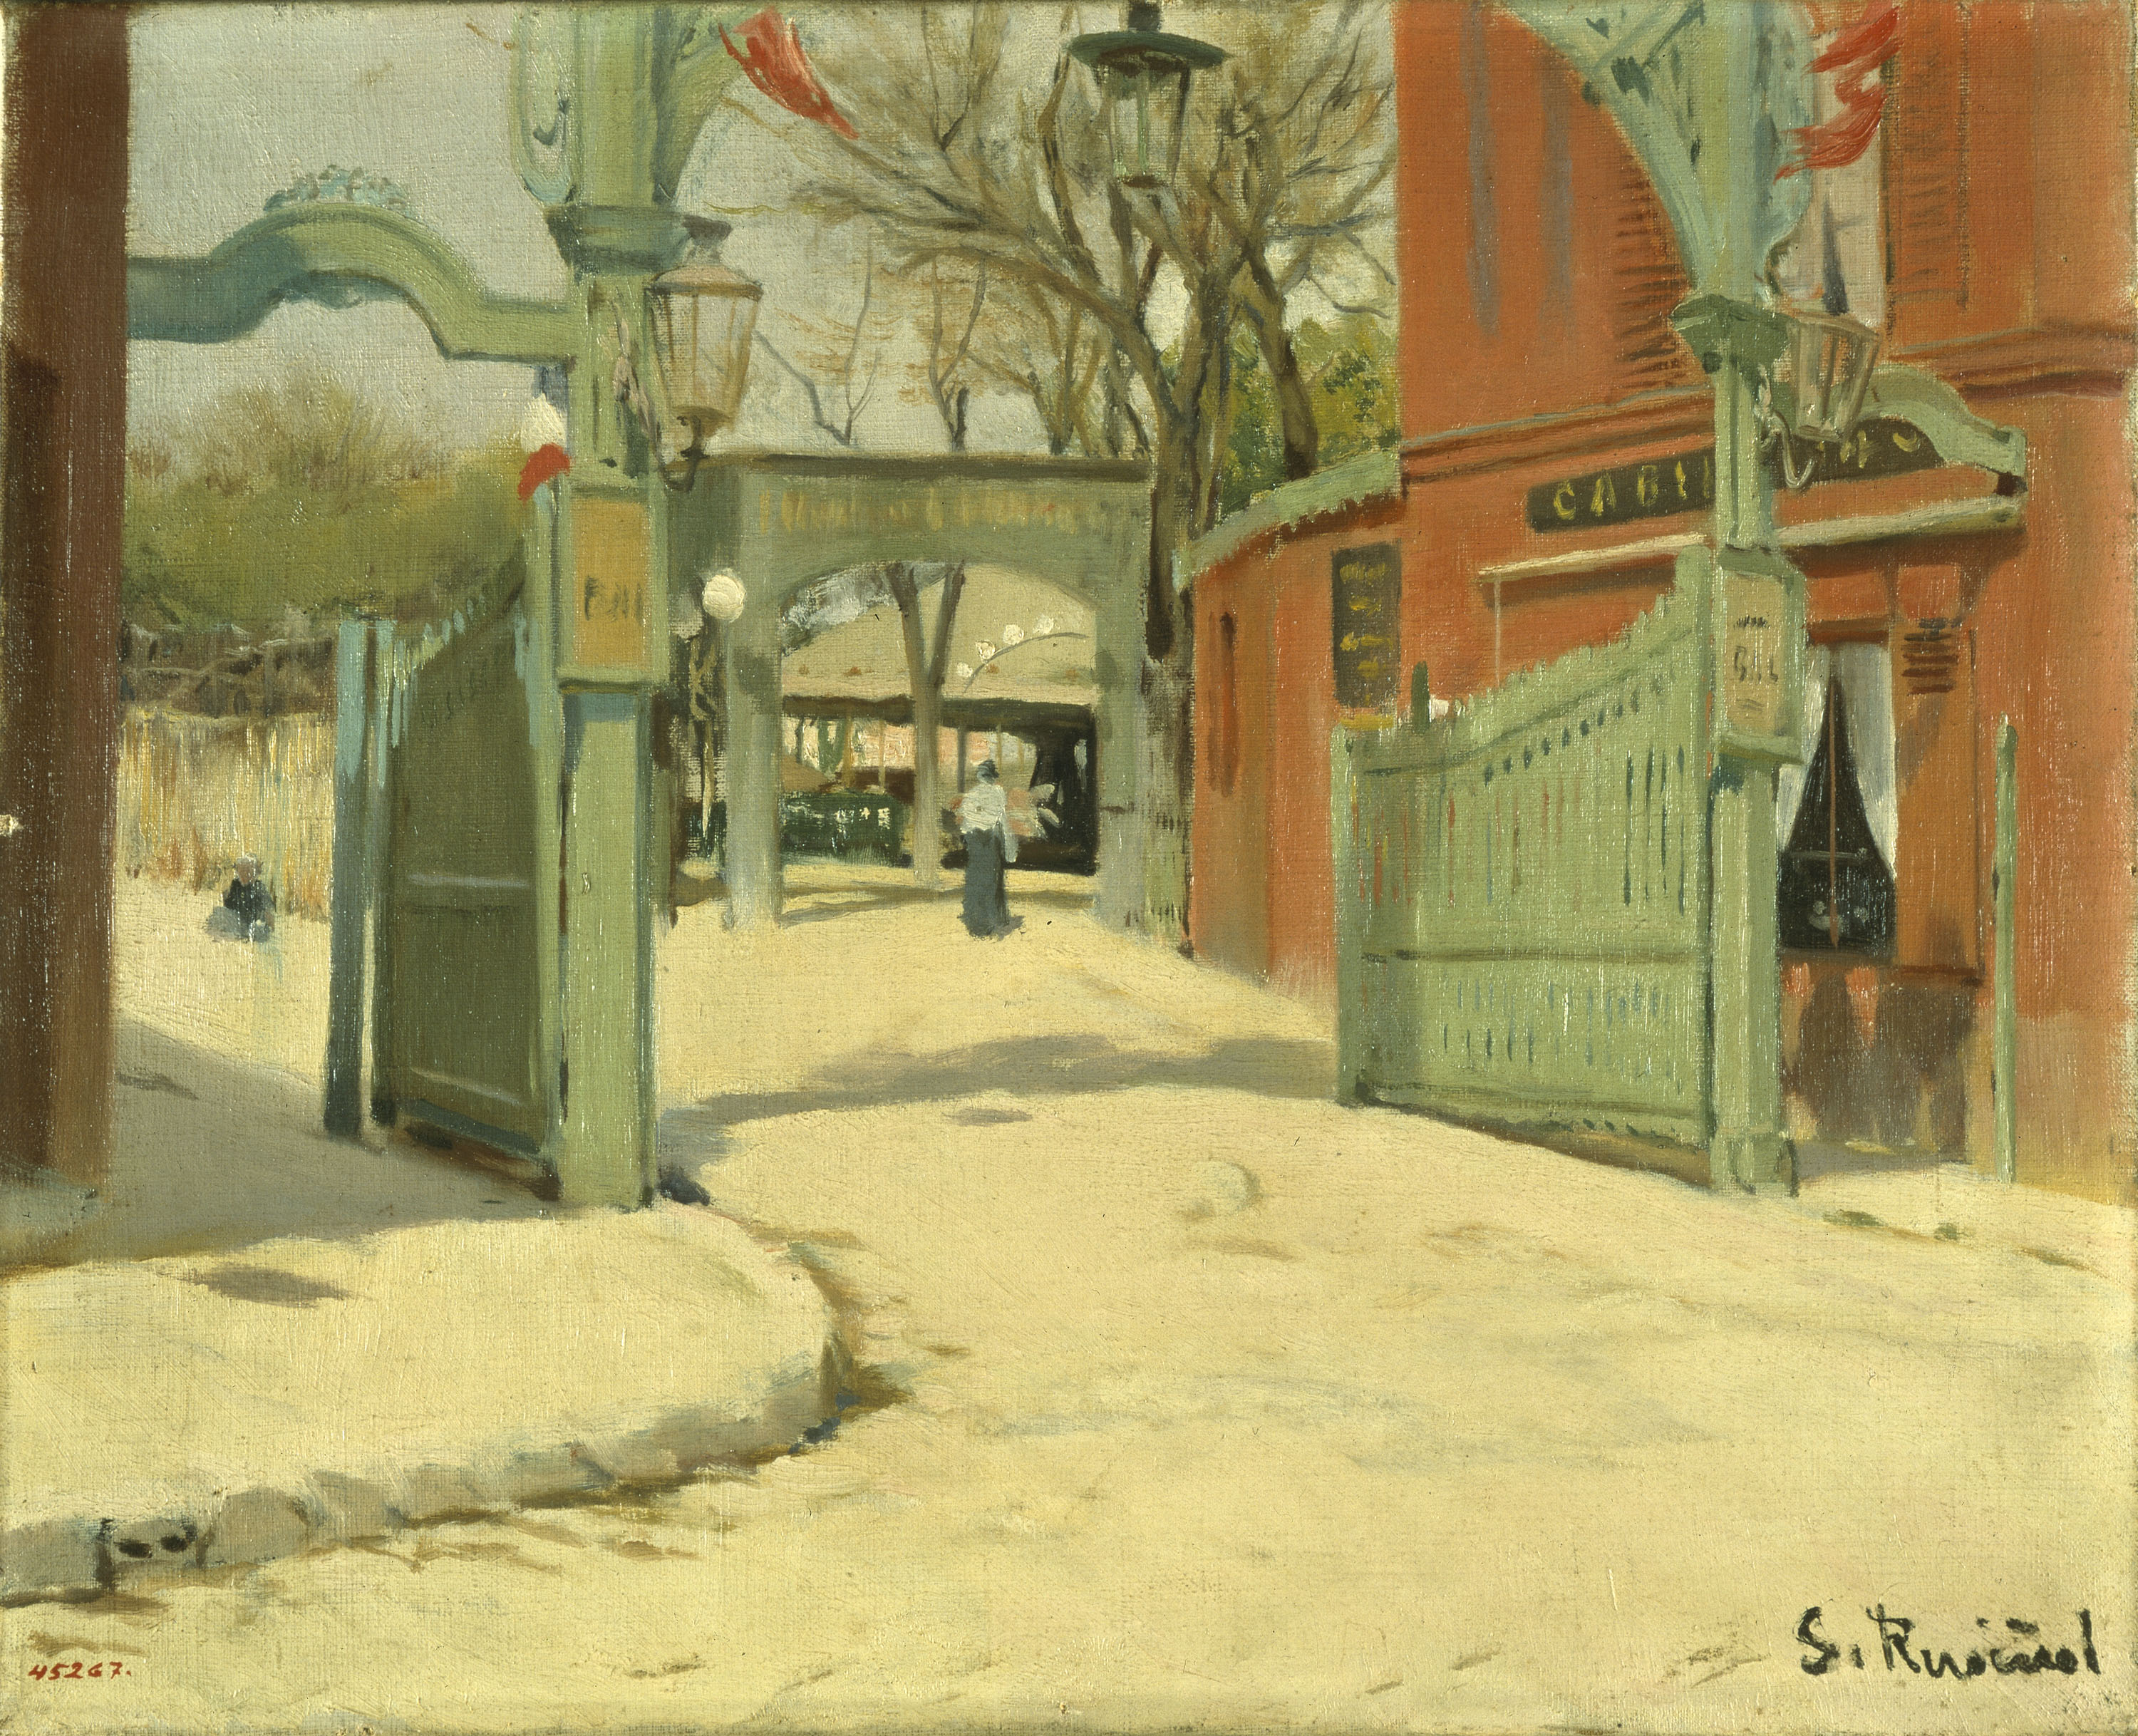 Santiago Rusiñol, Entrance to the Park of the Moulin de la Galette, 1891